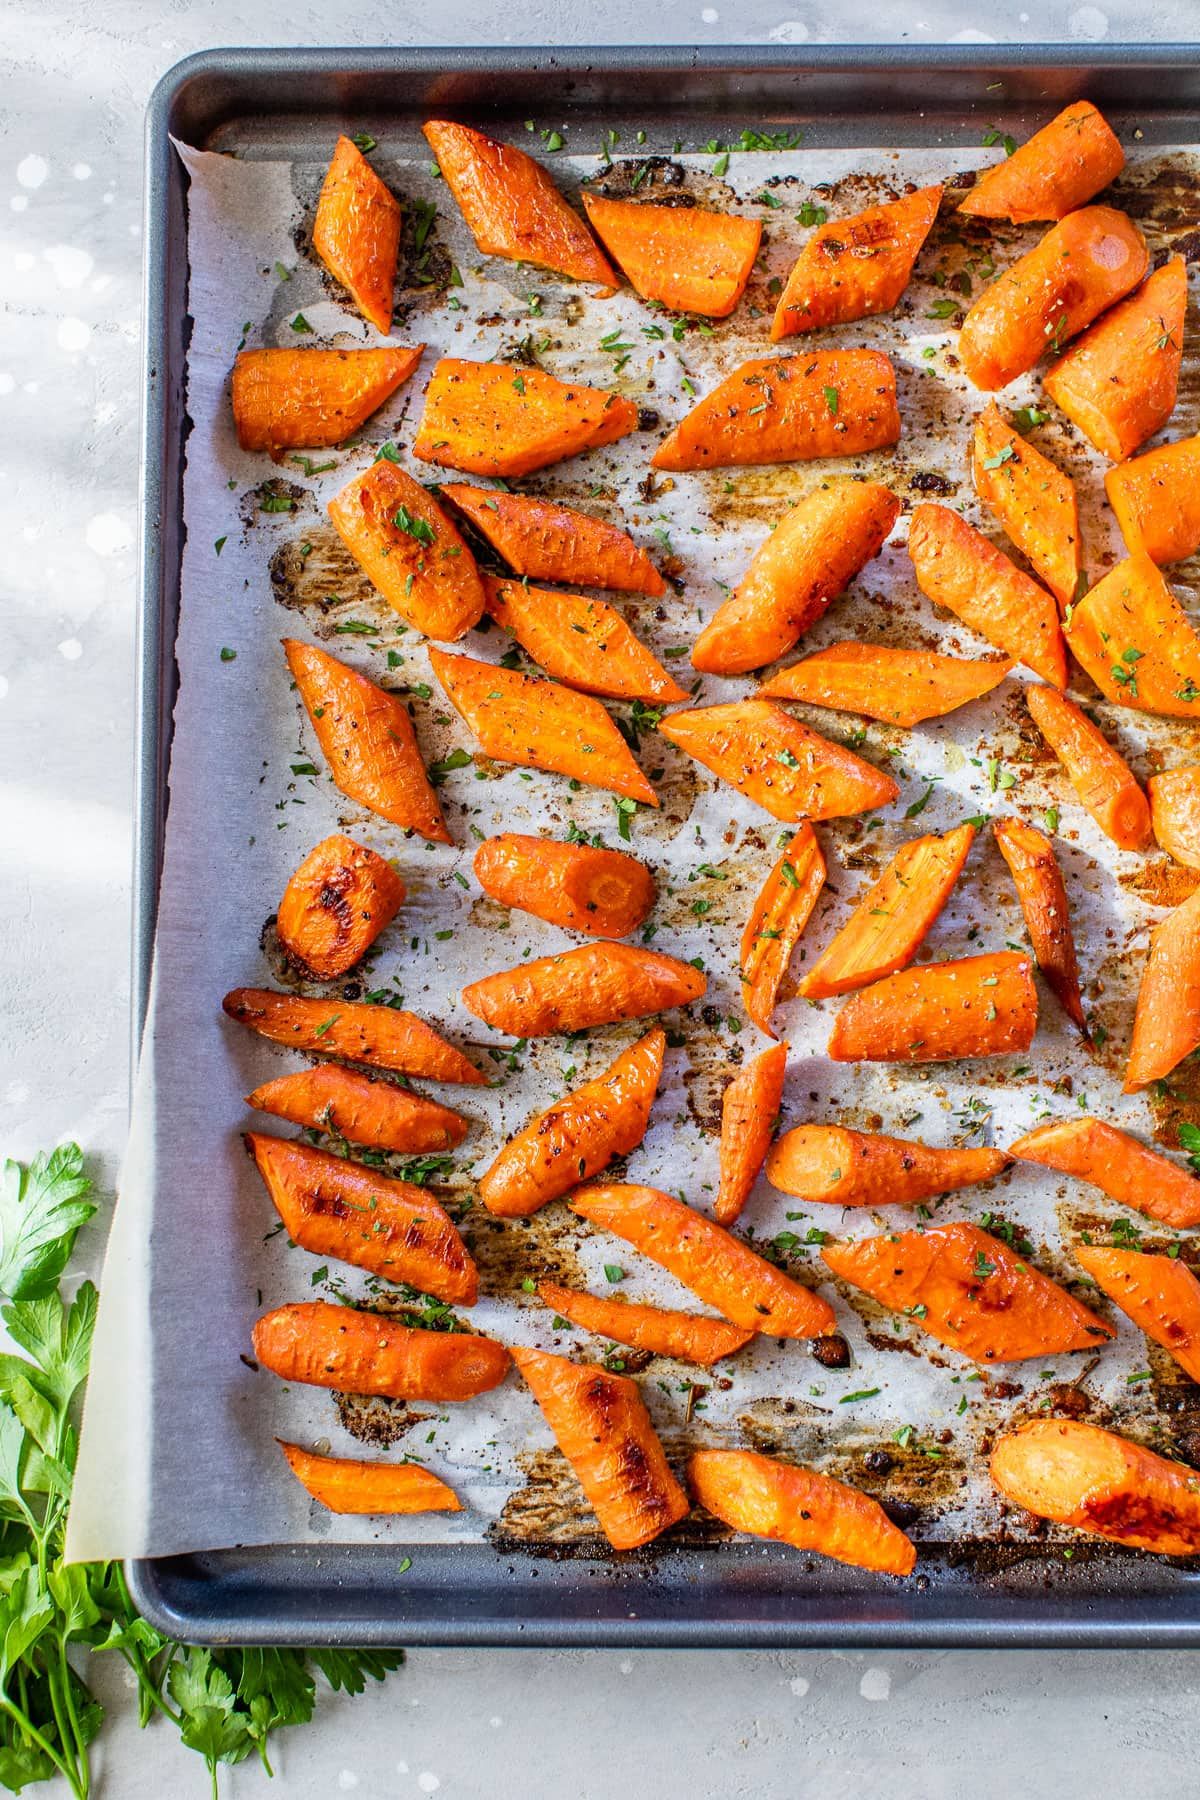 a sheetpan with roasted carrots sprinkled with herbs